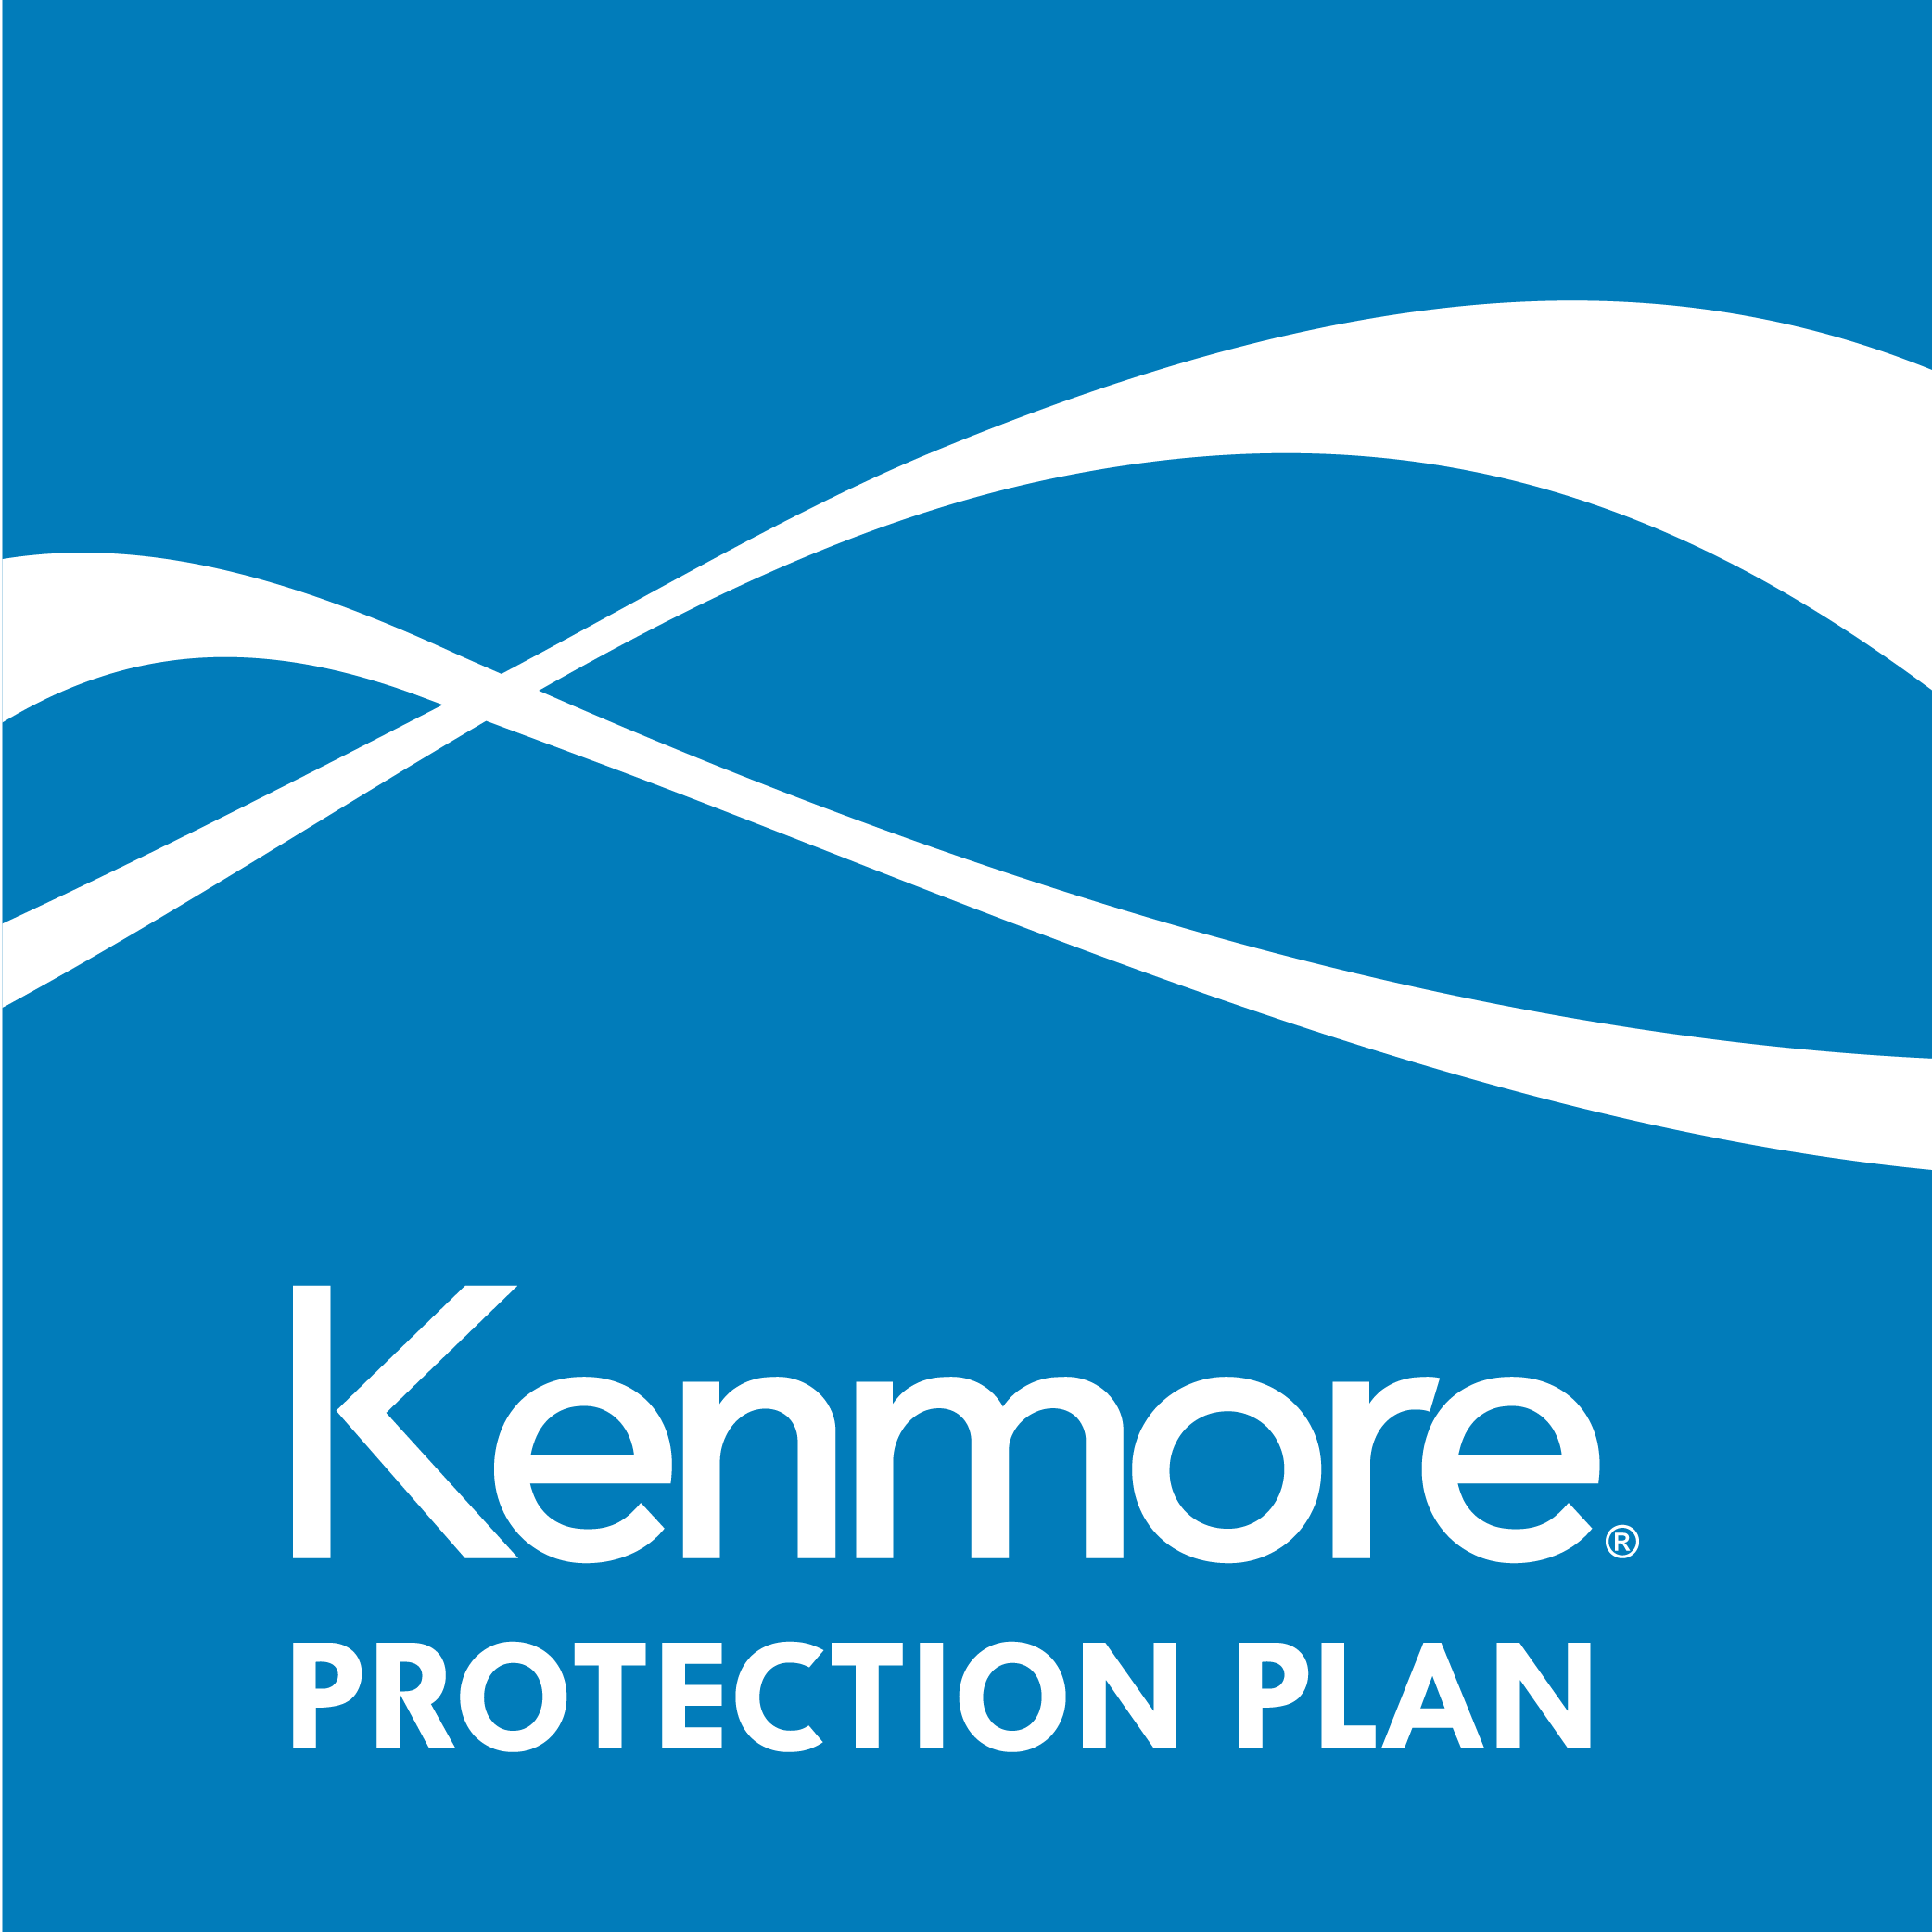 Web_Images_Master_Kenmore_Protection_Plan.png